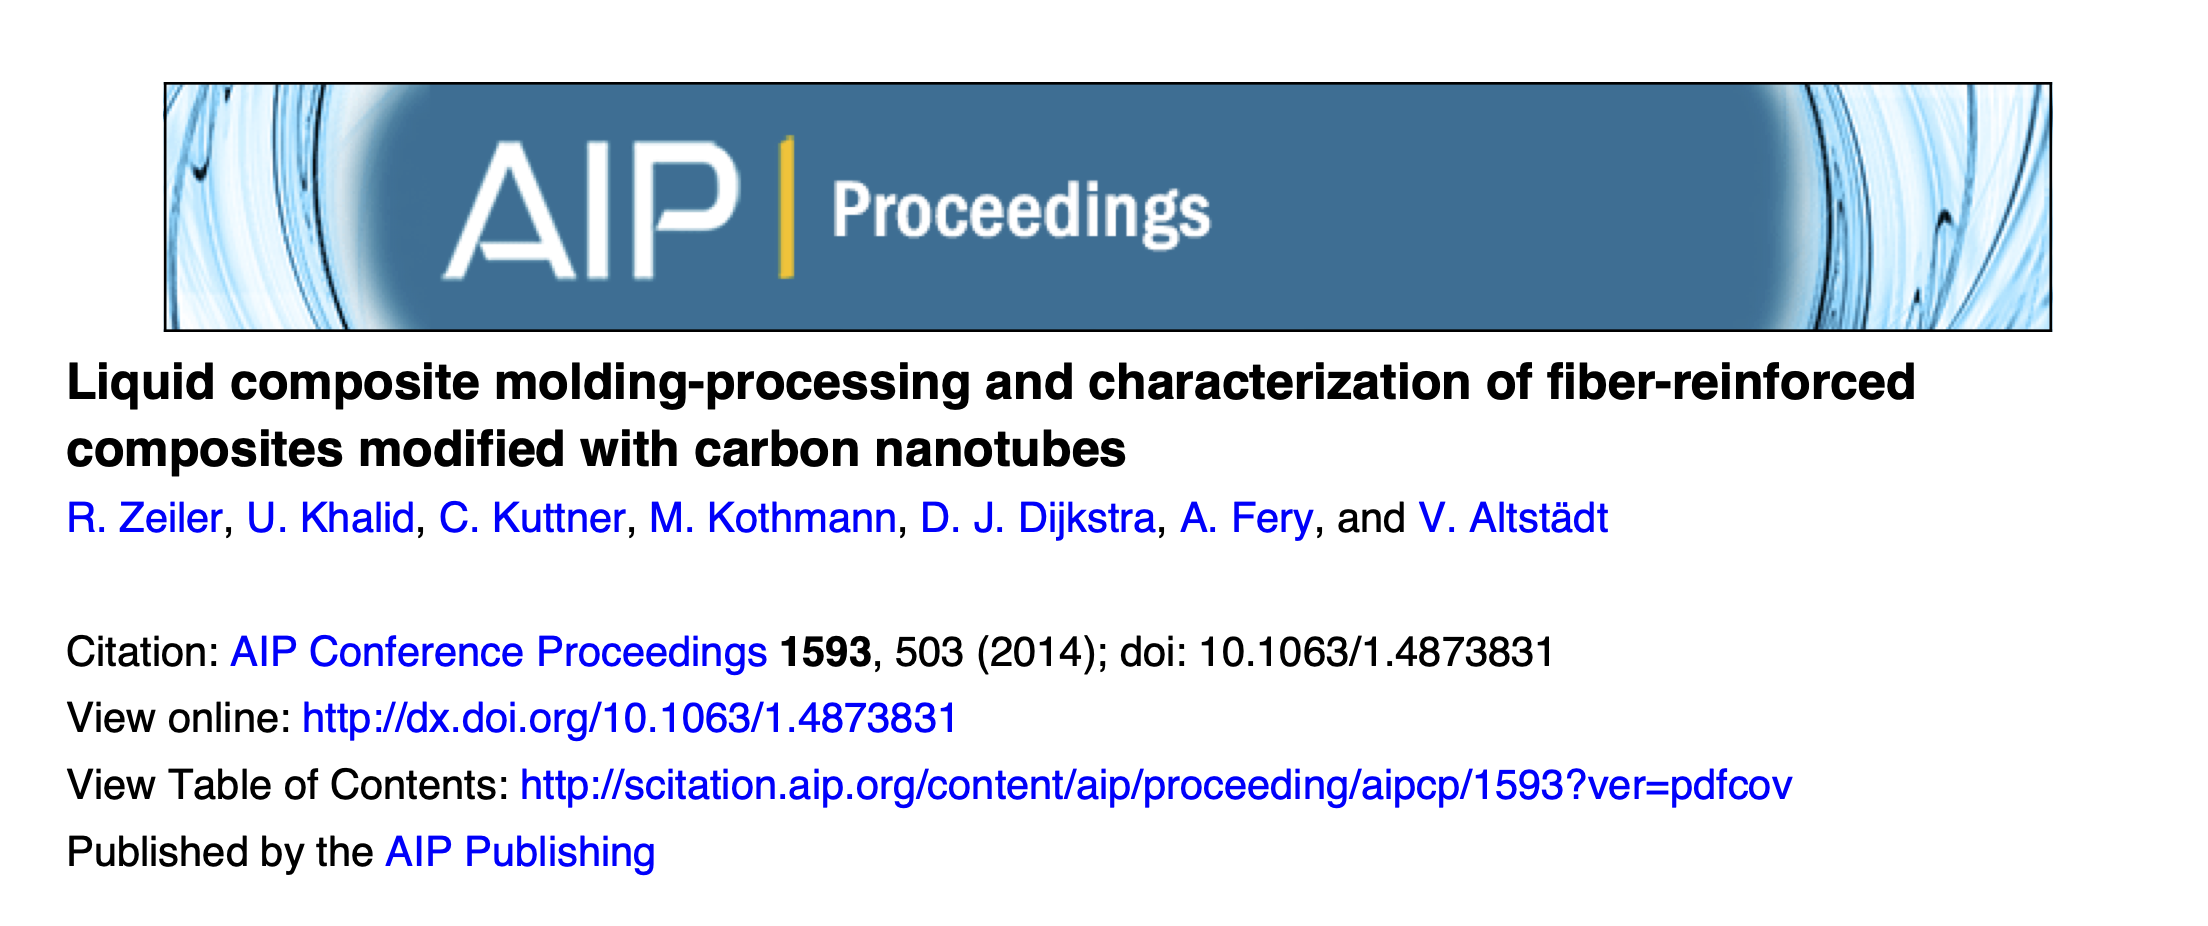 Liquid Composite Molding-Processing and Characterization of Fiber-Reinforced Composites Modified with Carbon Nanotubes